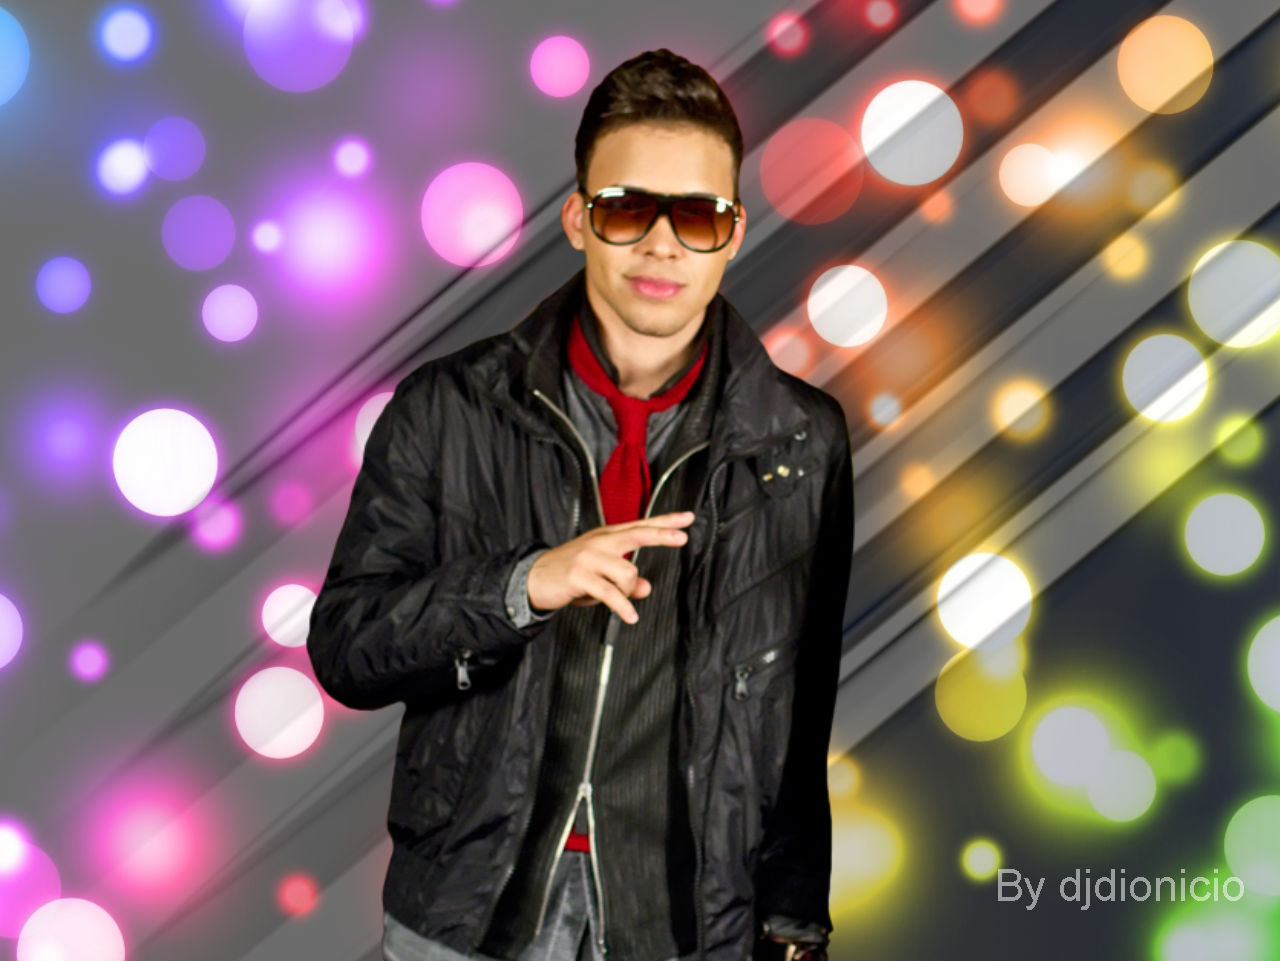 prince royce wallpaper fondos de pantalla gratis